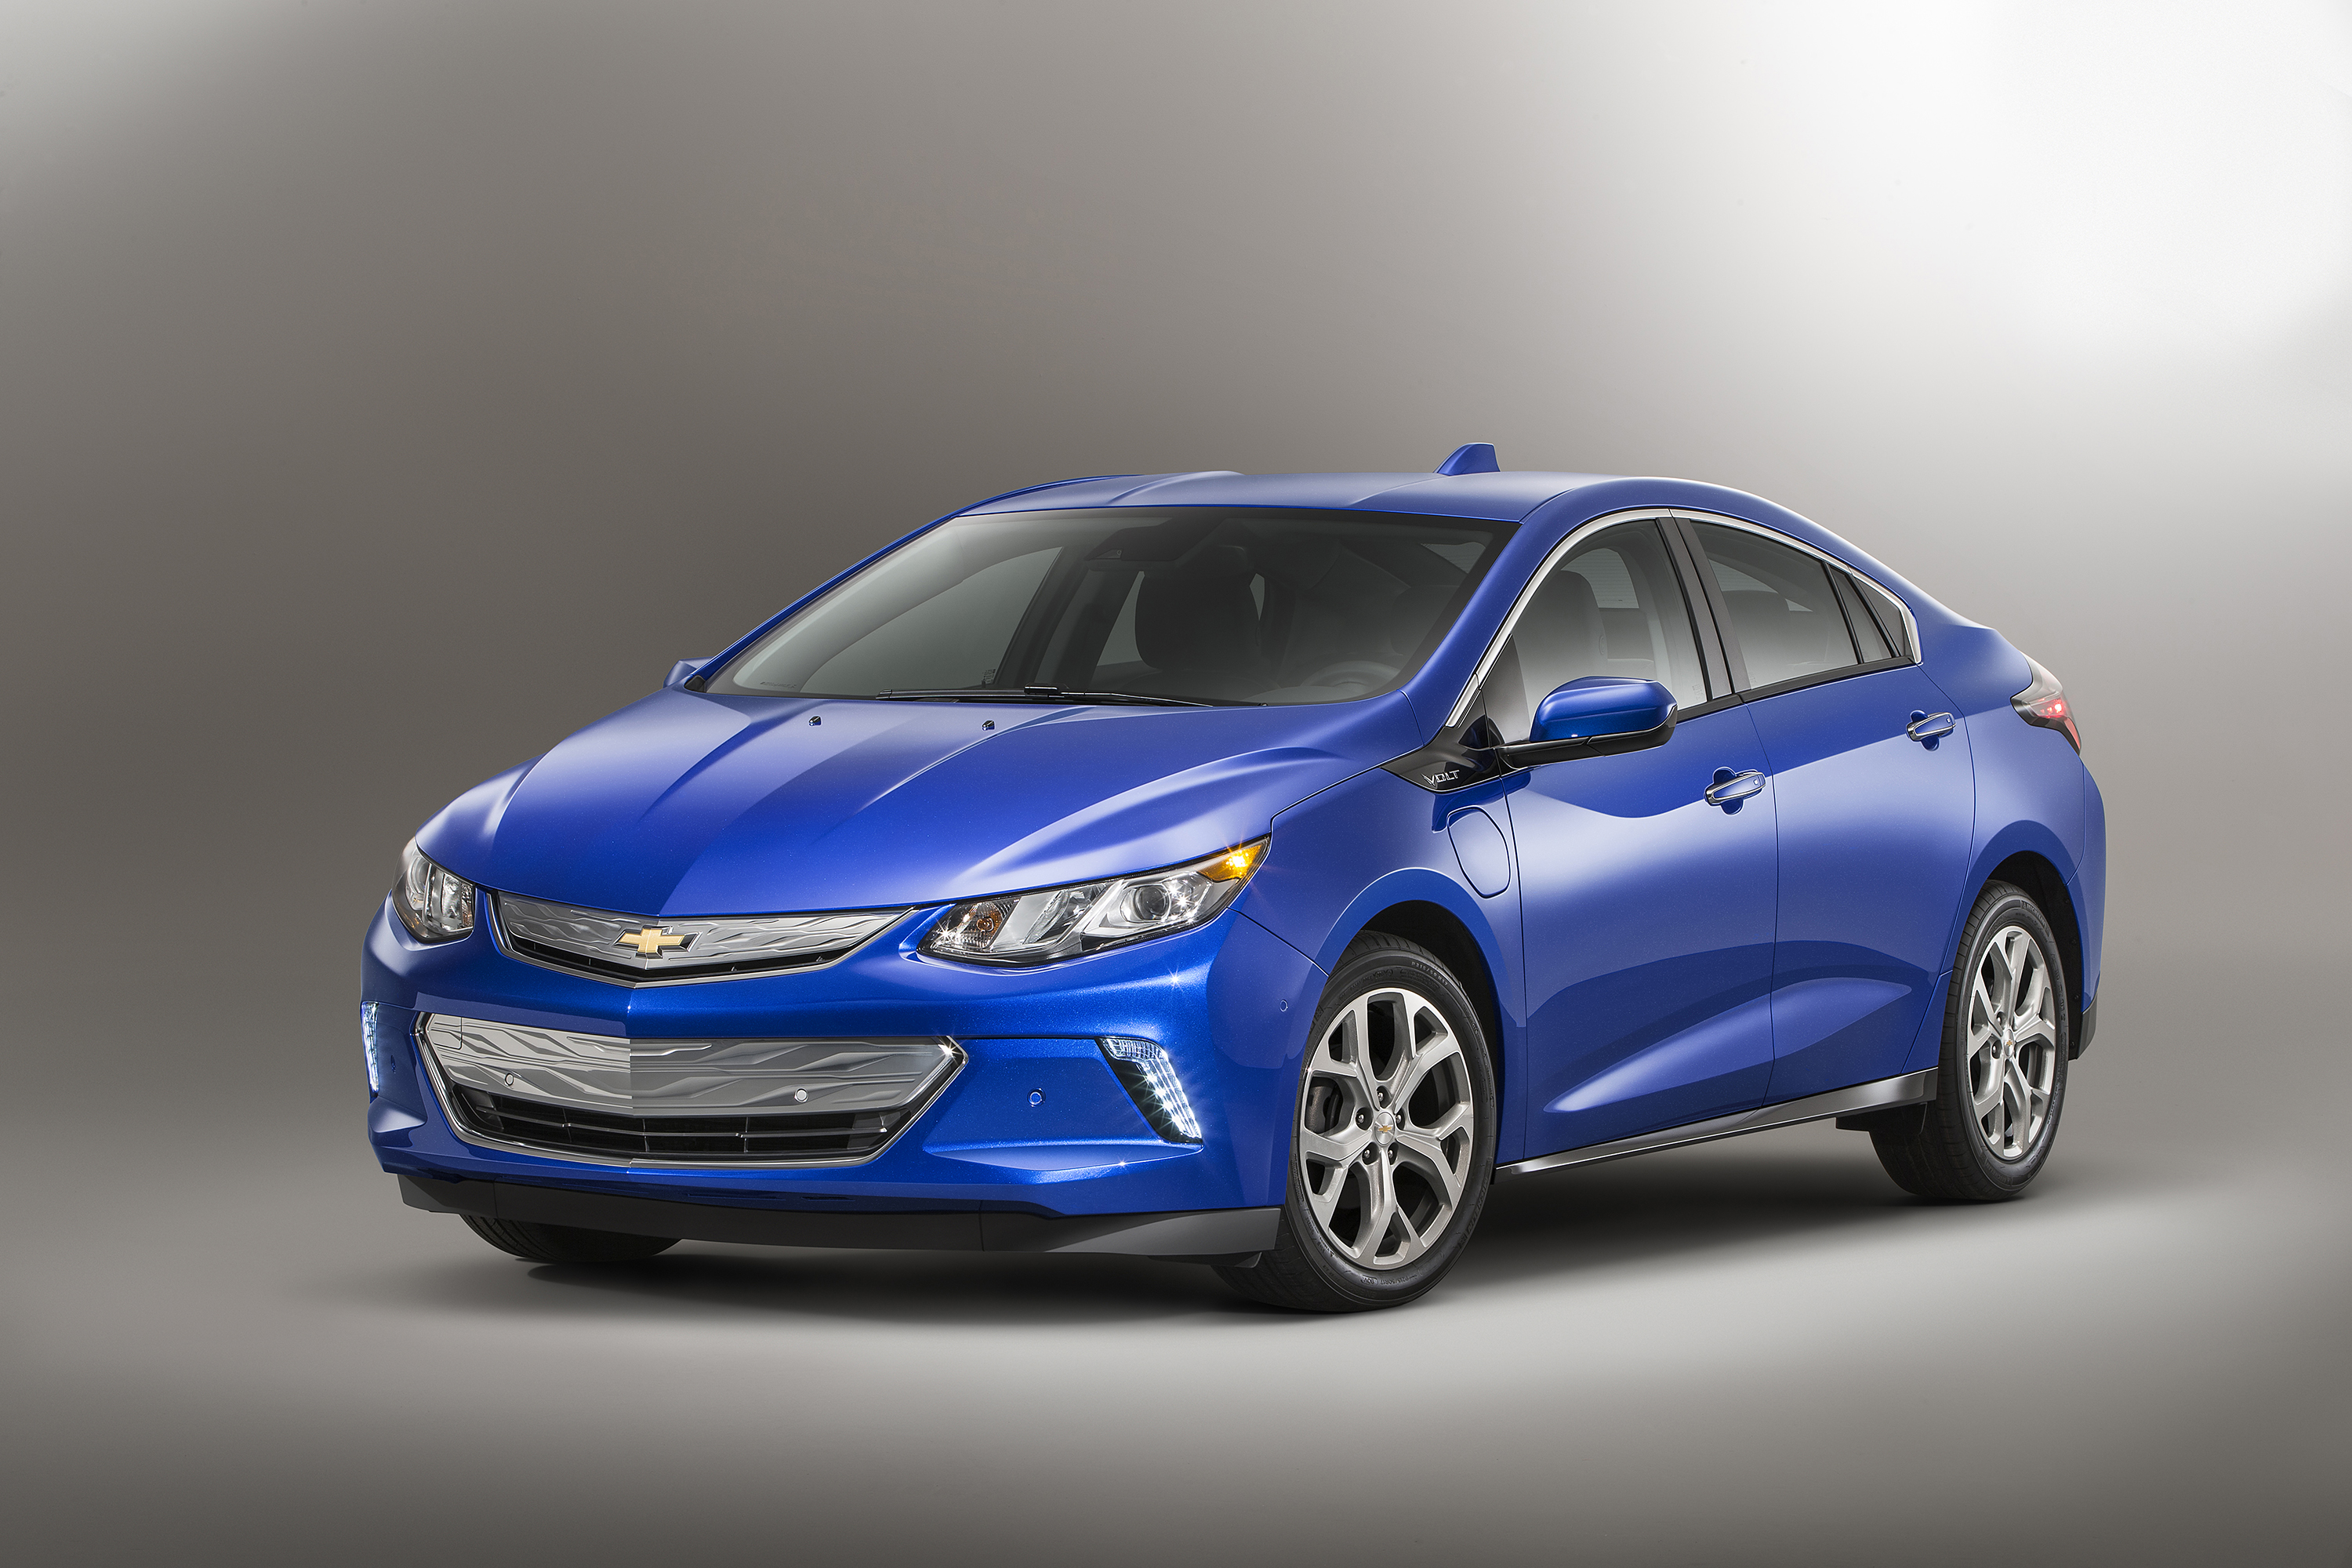 The all-new 2016 Chevrolet Volt electric car with extended range, showcasing a sleeker, sportier design that offers 50 miles of EV range, greater efficiency and stronger acceleration.